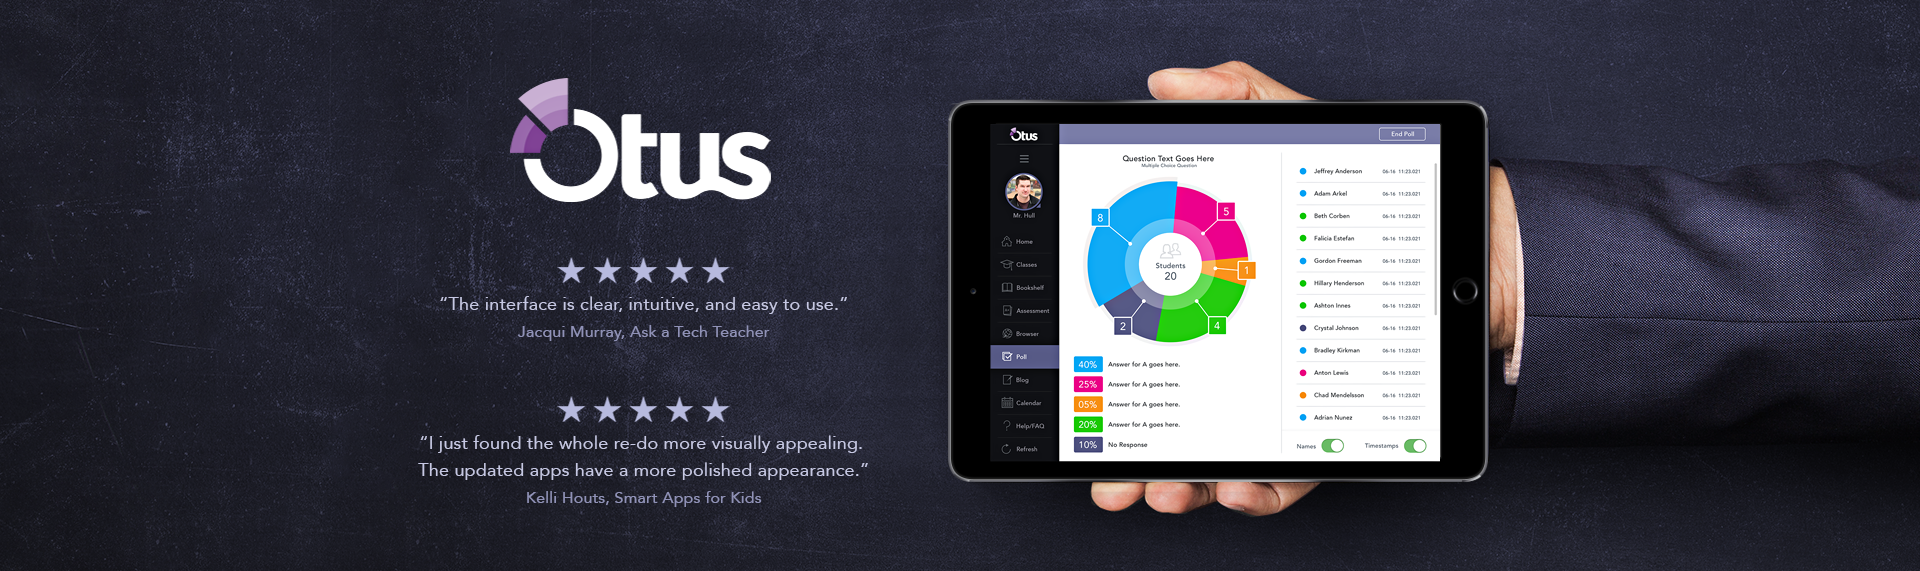 Otus Plus  iPad Application UX & UI Design  The Skins Factory was invited to rethink the UX & redesign the visual UI for the flexible LMS & Learning Analytics Platform - Otus Plus. Utilizing a collapsible & expandable, double sidebar navigation, the intuitive design is receiving 5-Star reviews from the some of the biggest names in the educational app review market. From Login Screens, built-in browser, vibrant analytic graphs, seating charts, blog design and much more. The Skins Factory delivered a clean, intuitive design that is sure to delight both students, parents, & teachers.